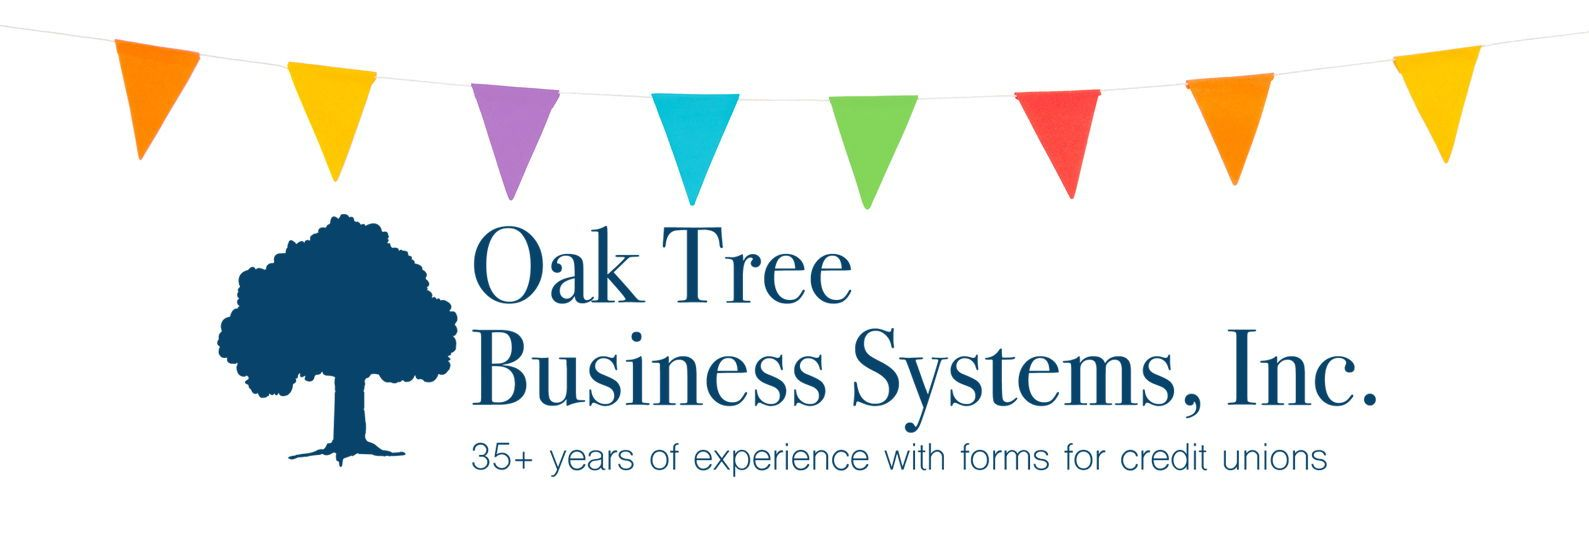 Oak tree business systems inc has 35 years of serving